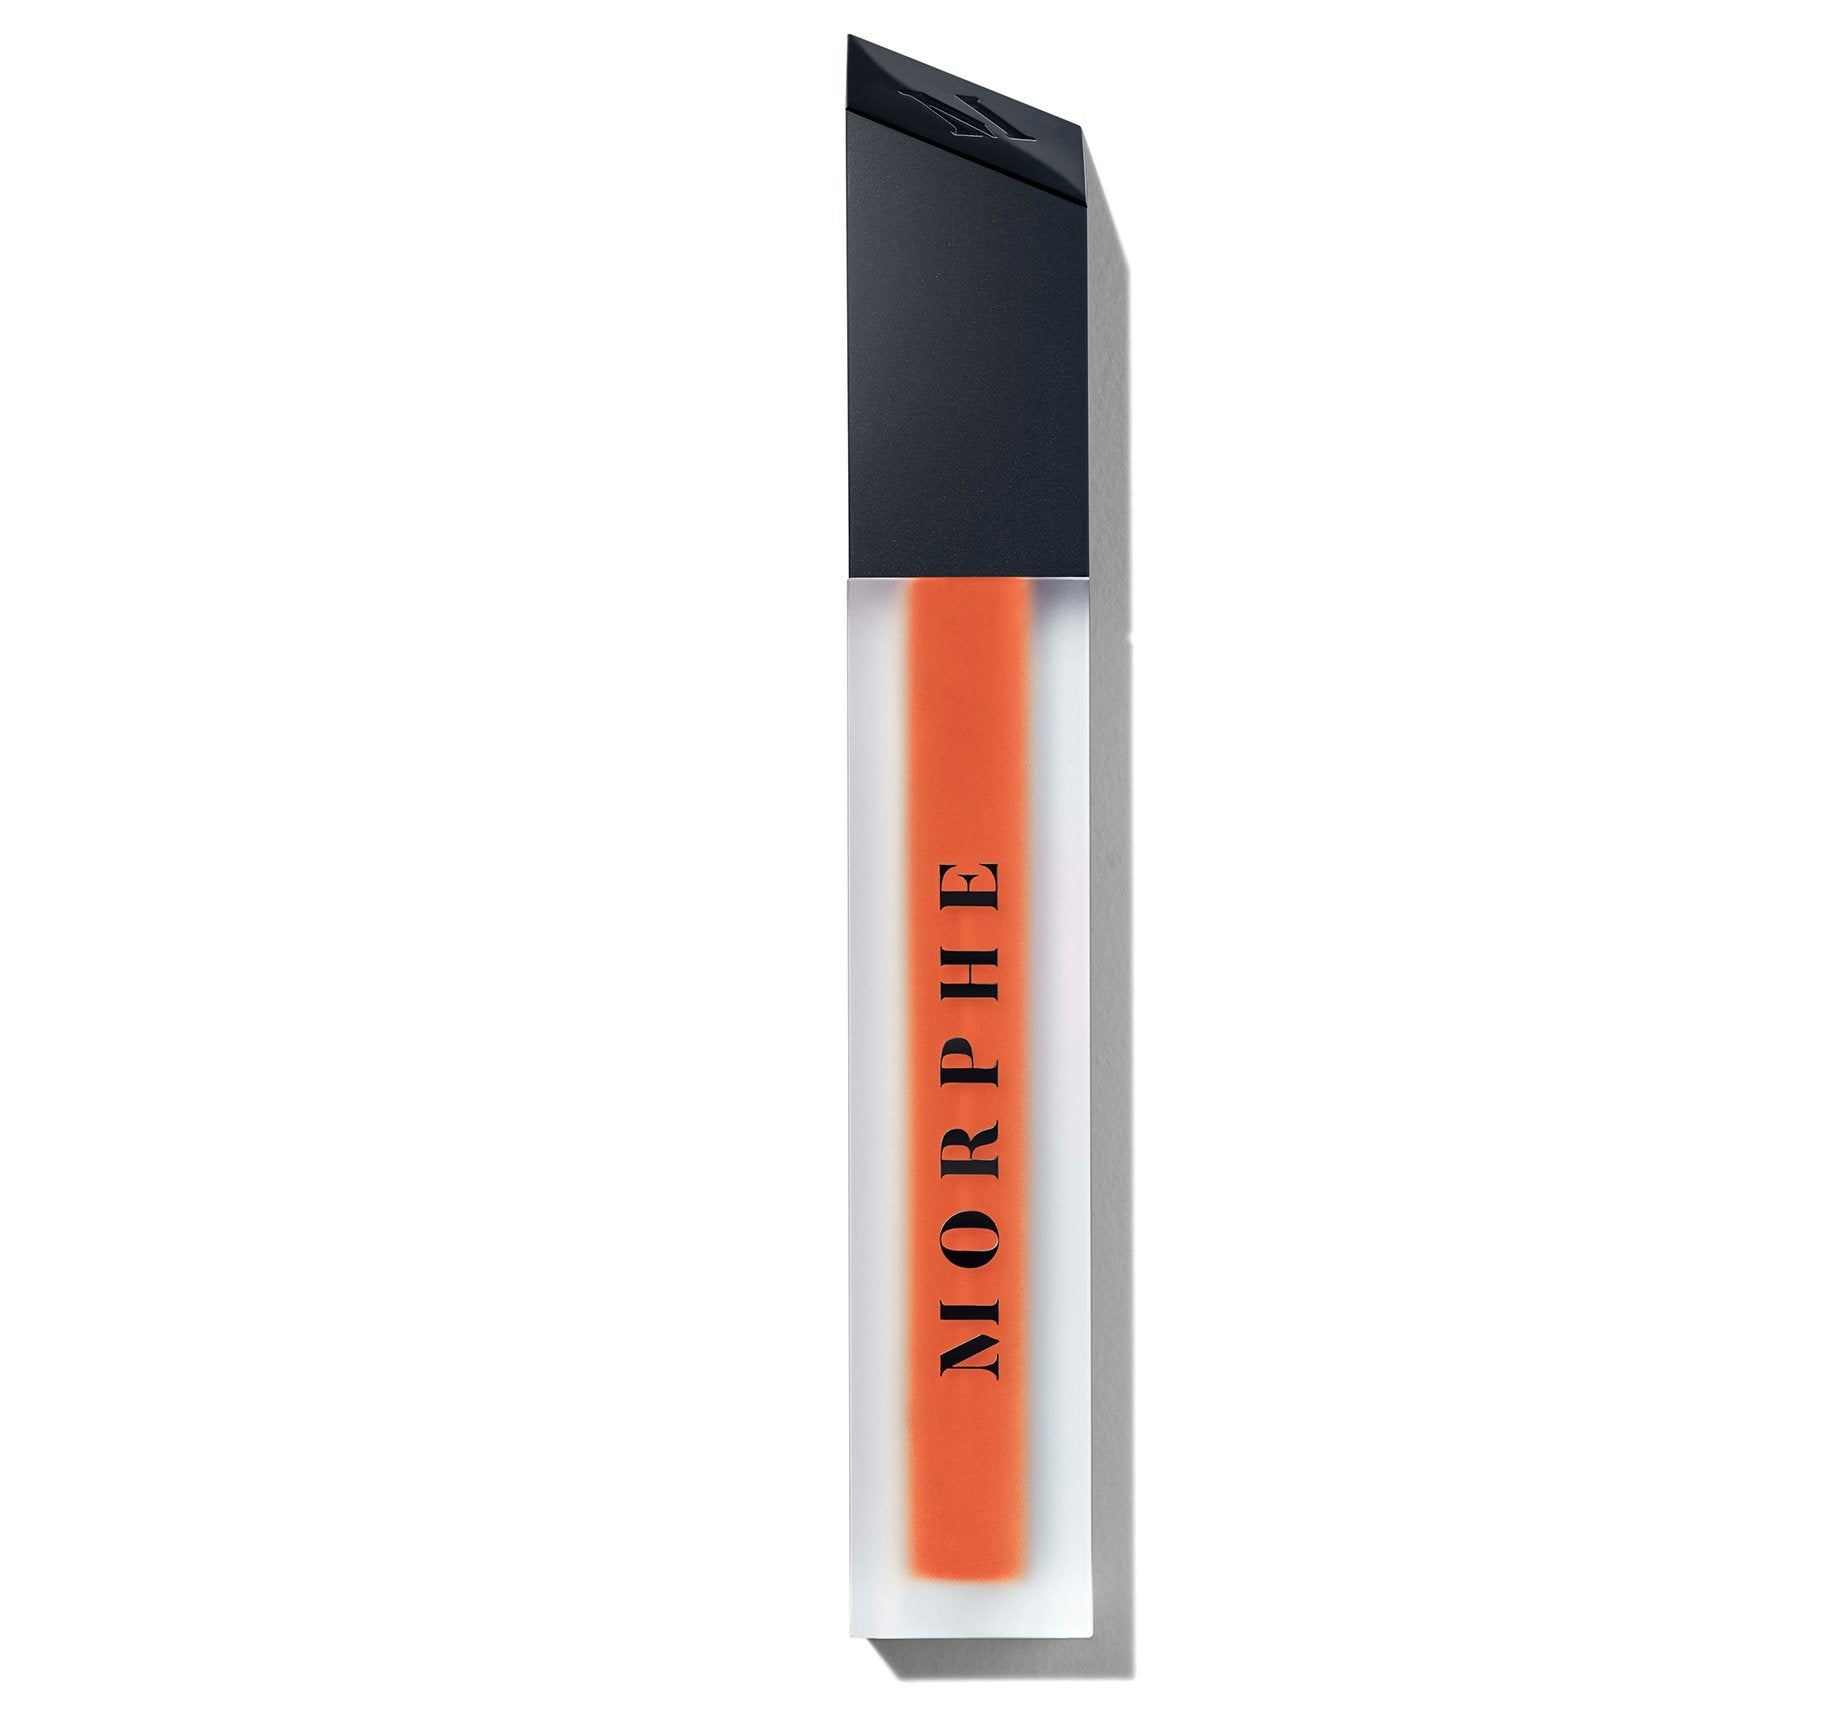 MATTE LIQUID LIPSTICK - SPICY, view larger image